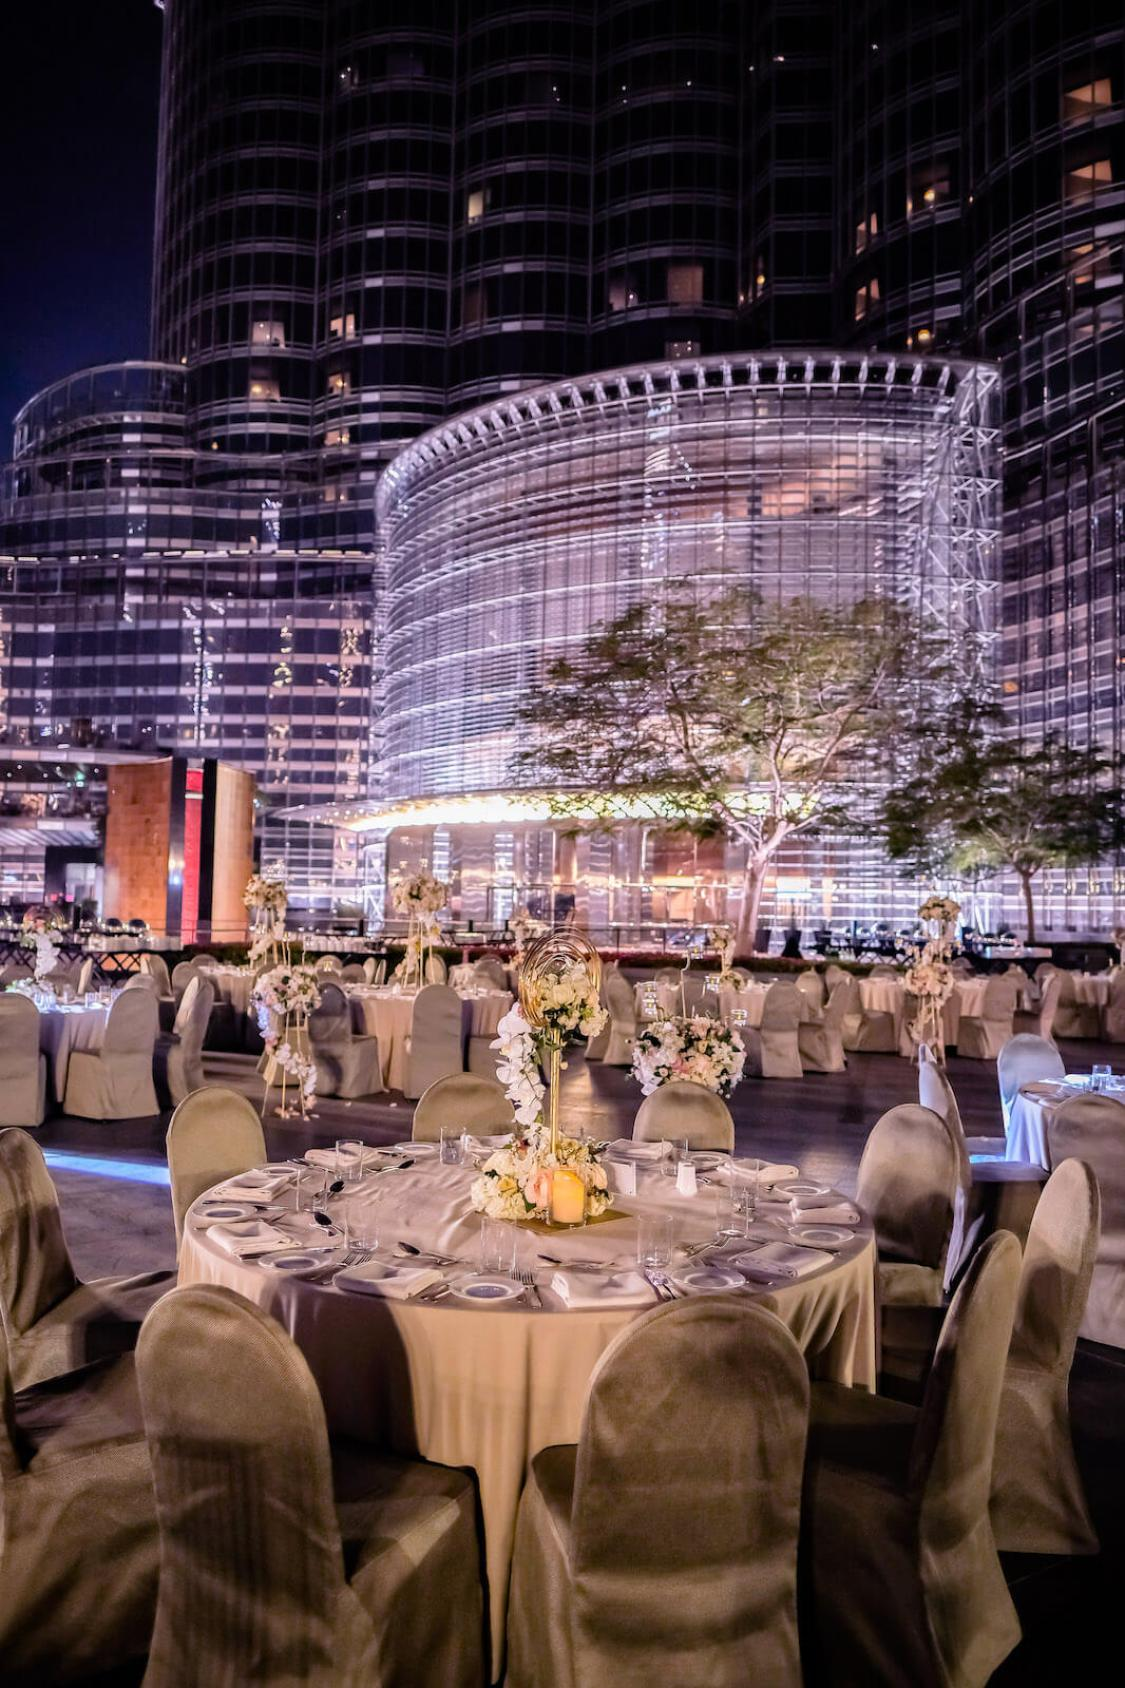 ARMANI HOTEL - WEDDING VENUE -  FEATURED ON MY LOVELY WEDDING BLOG - DUBAI WEDDING